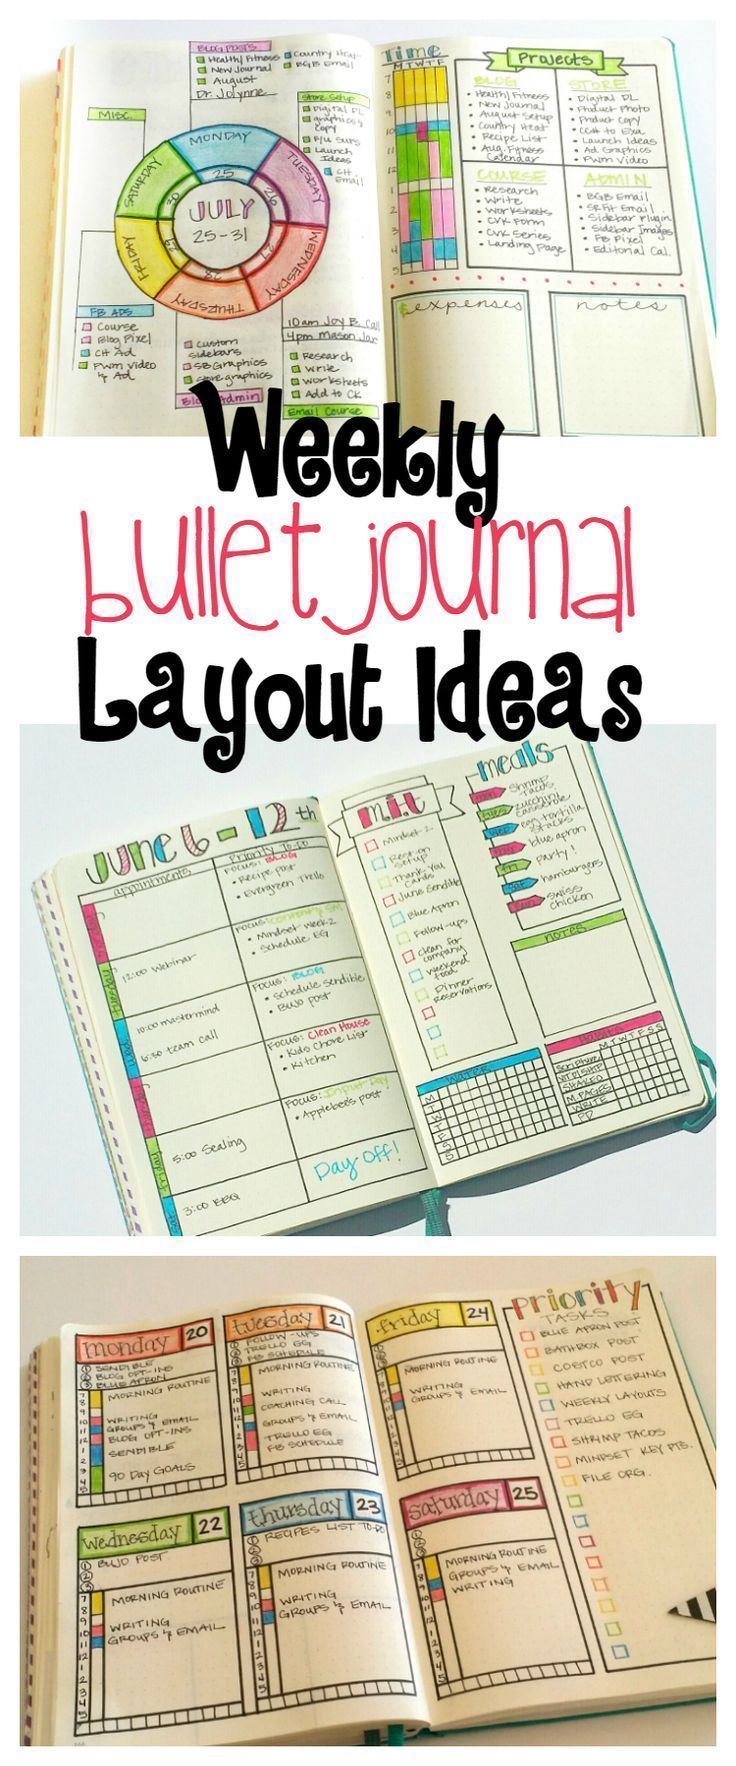 I like to think of my weekly bullet journal layouts as a weekly hub where I can plan, prioritize, and get a big picture view of the week ahead! via @Sublime Reflection